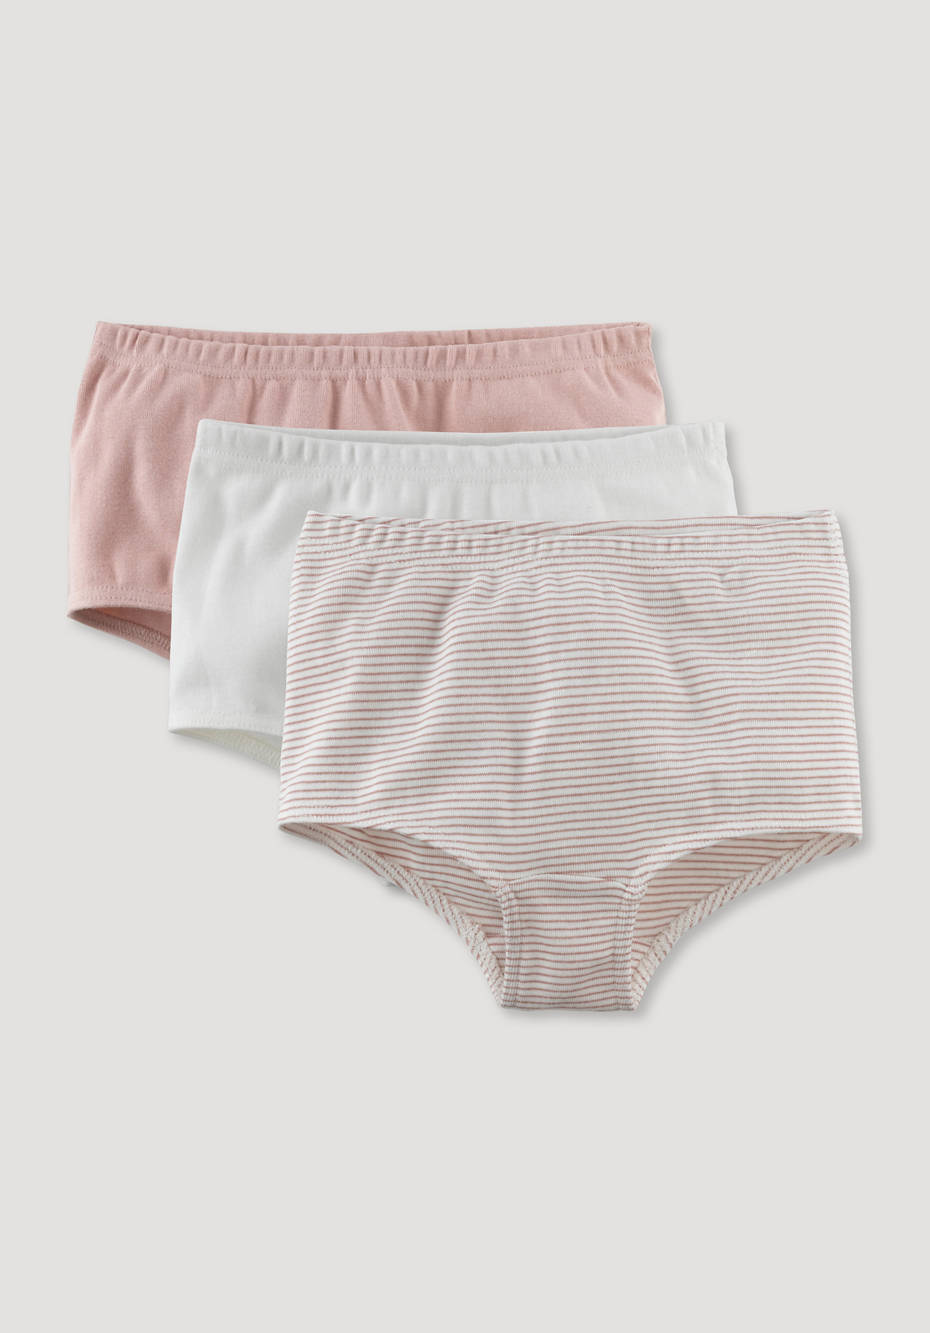 Set of 3 panties made from pure organic cotton